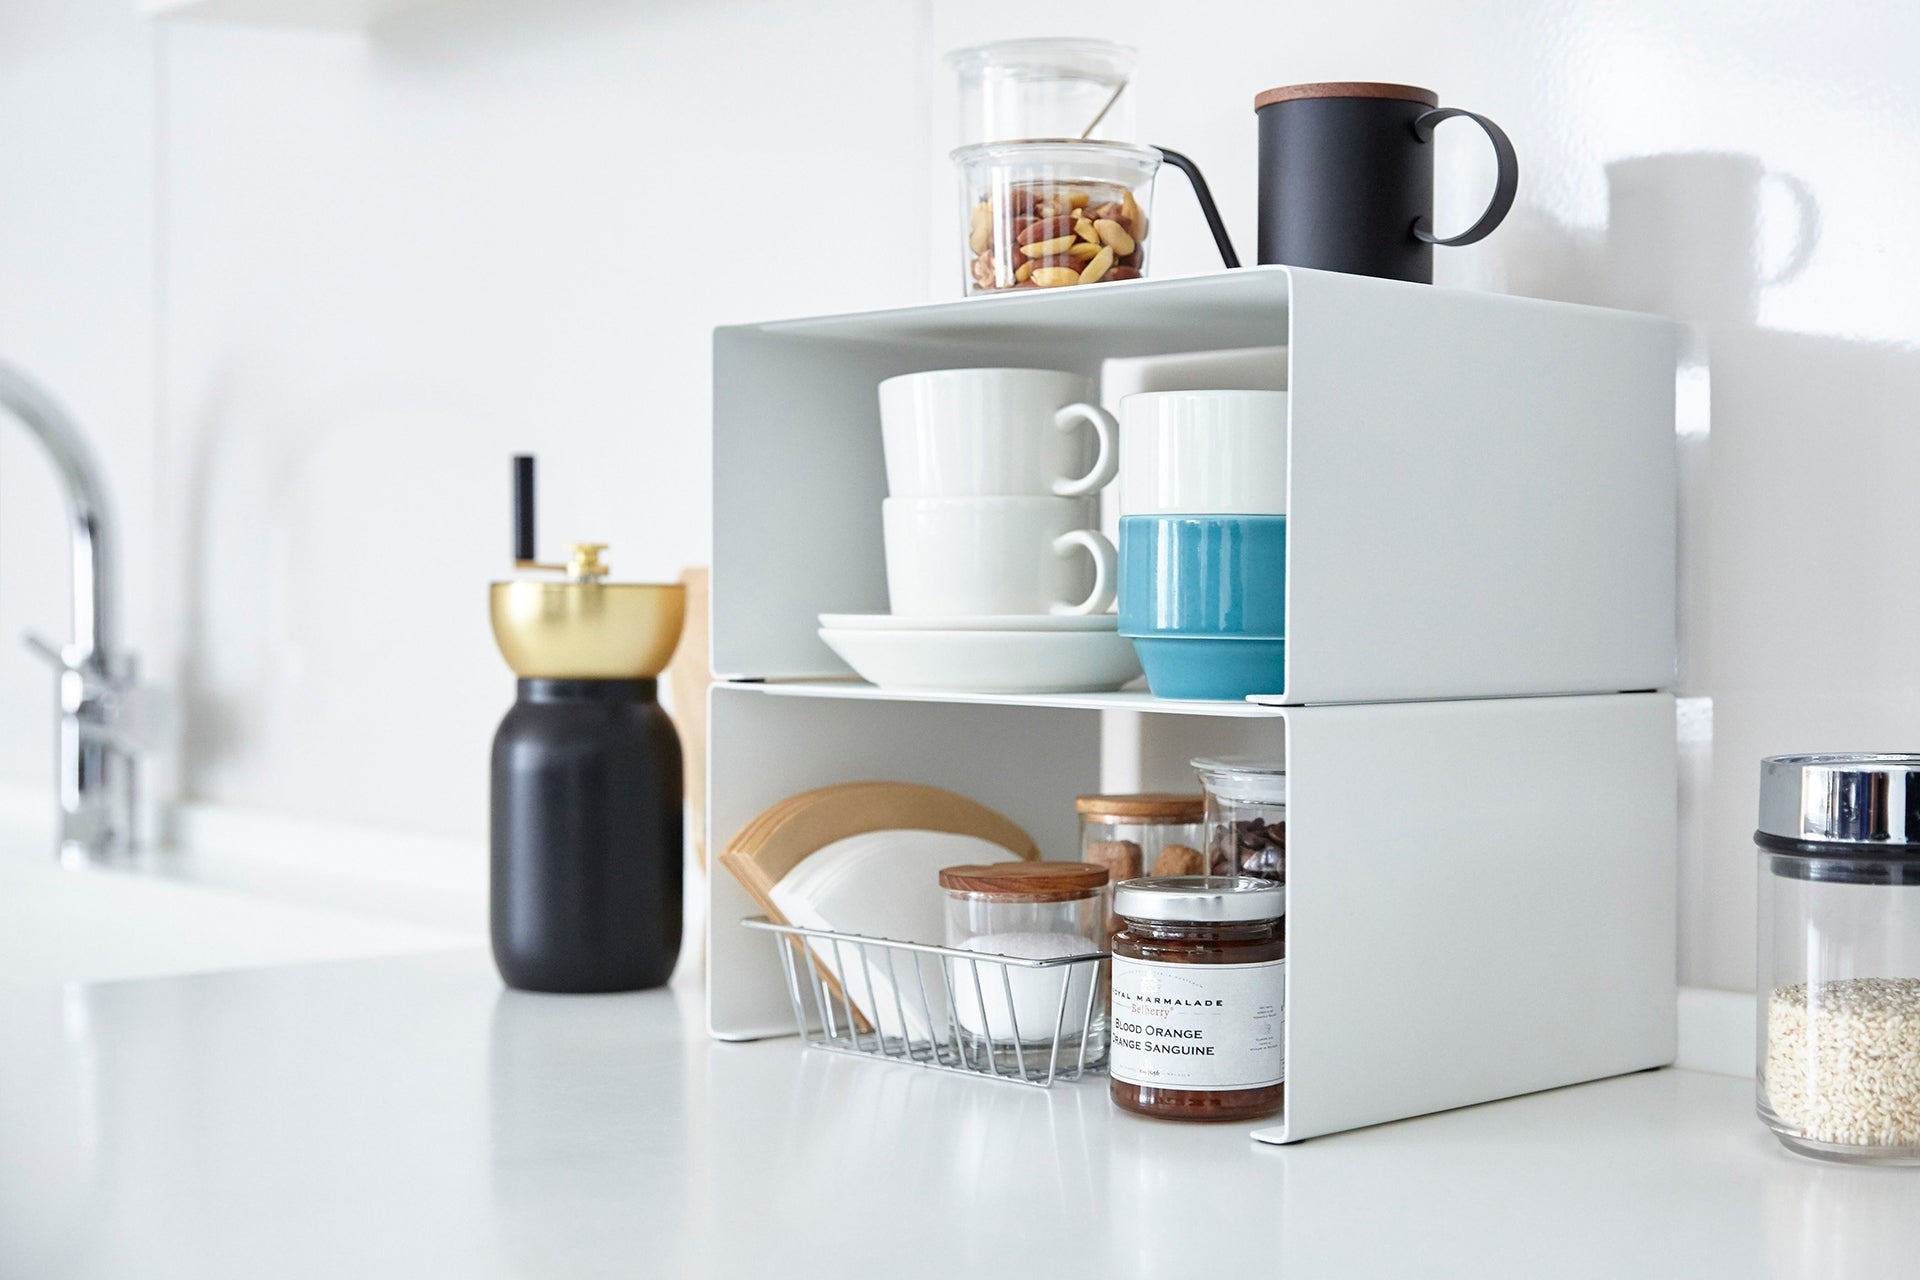 Two of Yamazaki Home Tower Stackable Litchen Rack is stacked and accomodating mugs, plates and some kitchen stuffs.